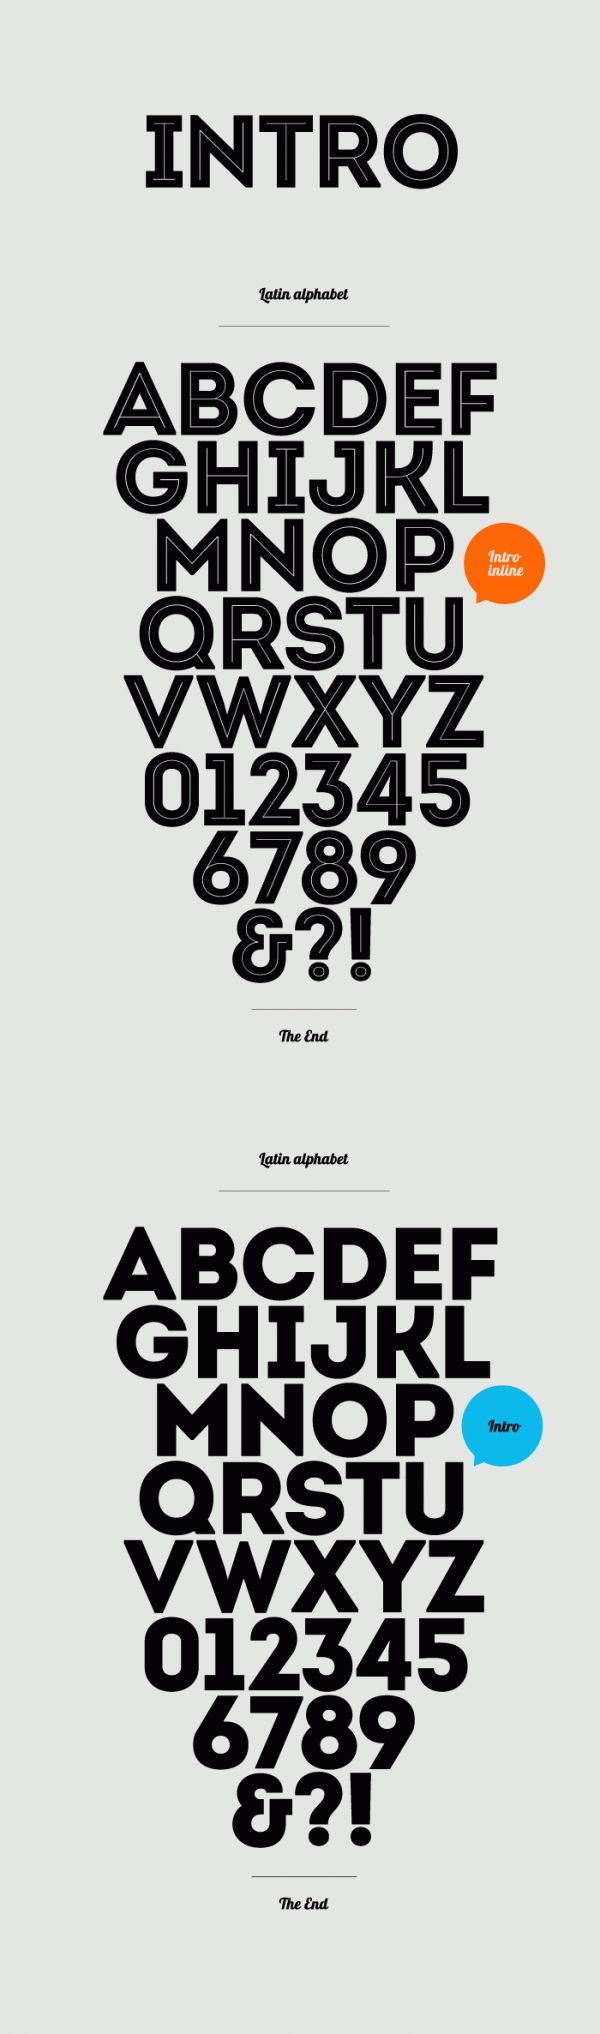 Intro. New free font by Fontfabric Type Foundry